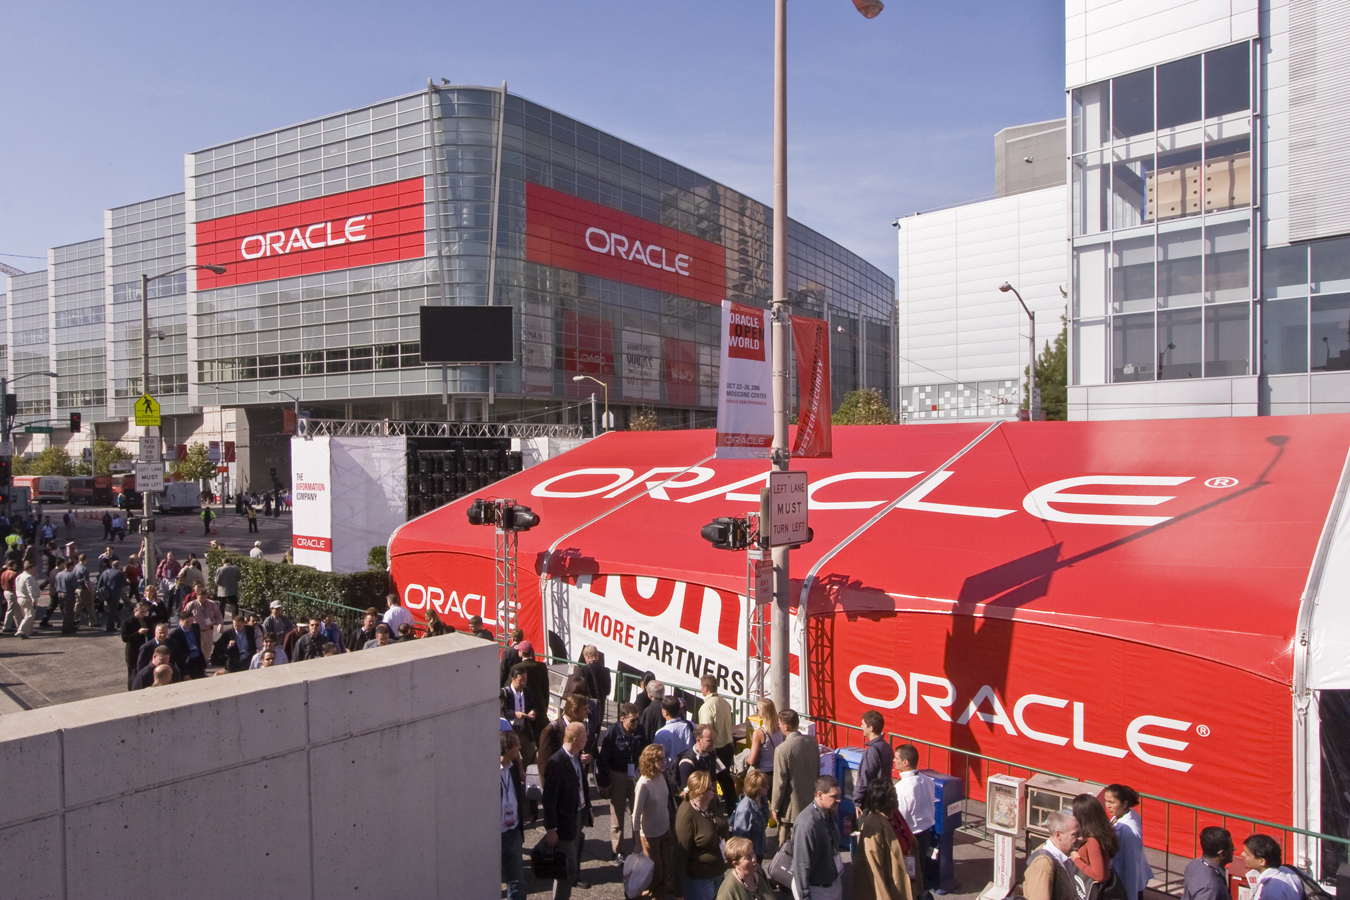 AMIS awarded Oracle Specialized Partner of the Year 2014 – EMEA Middleware